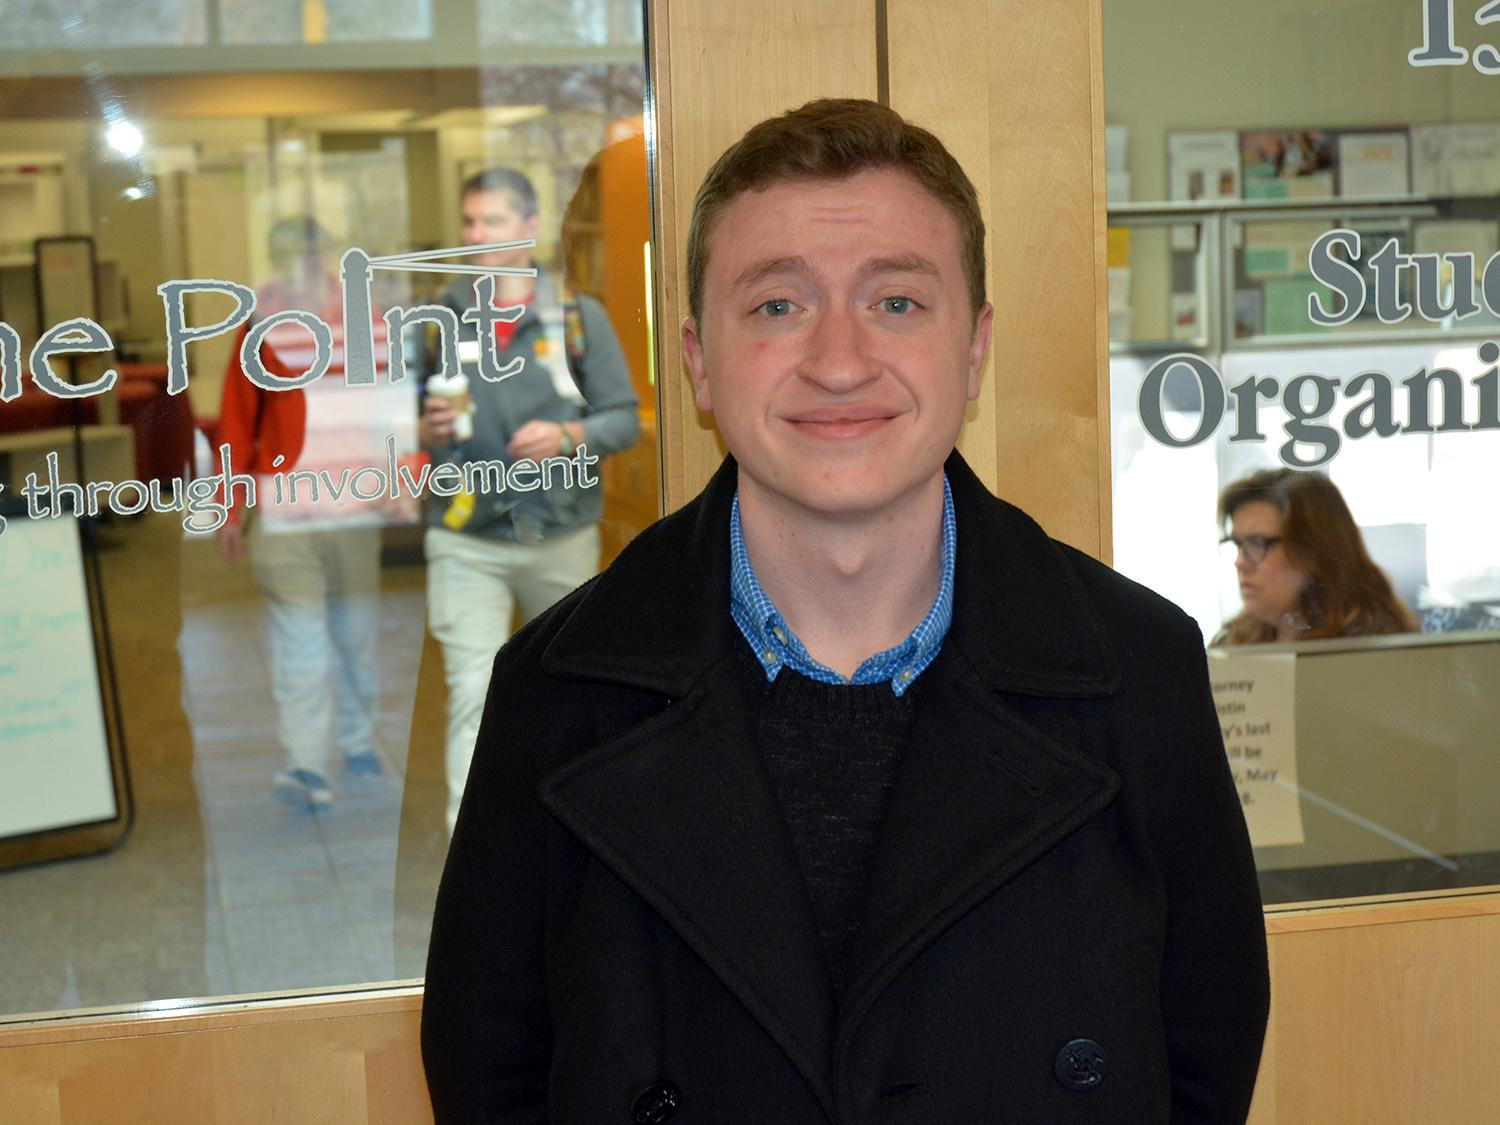 Conner Breese stands outside The Point, the student involvement hub